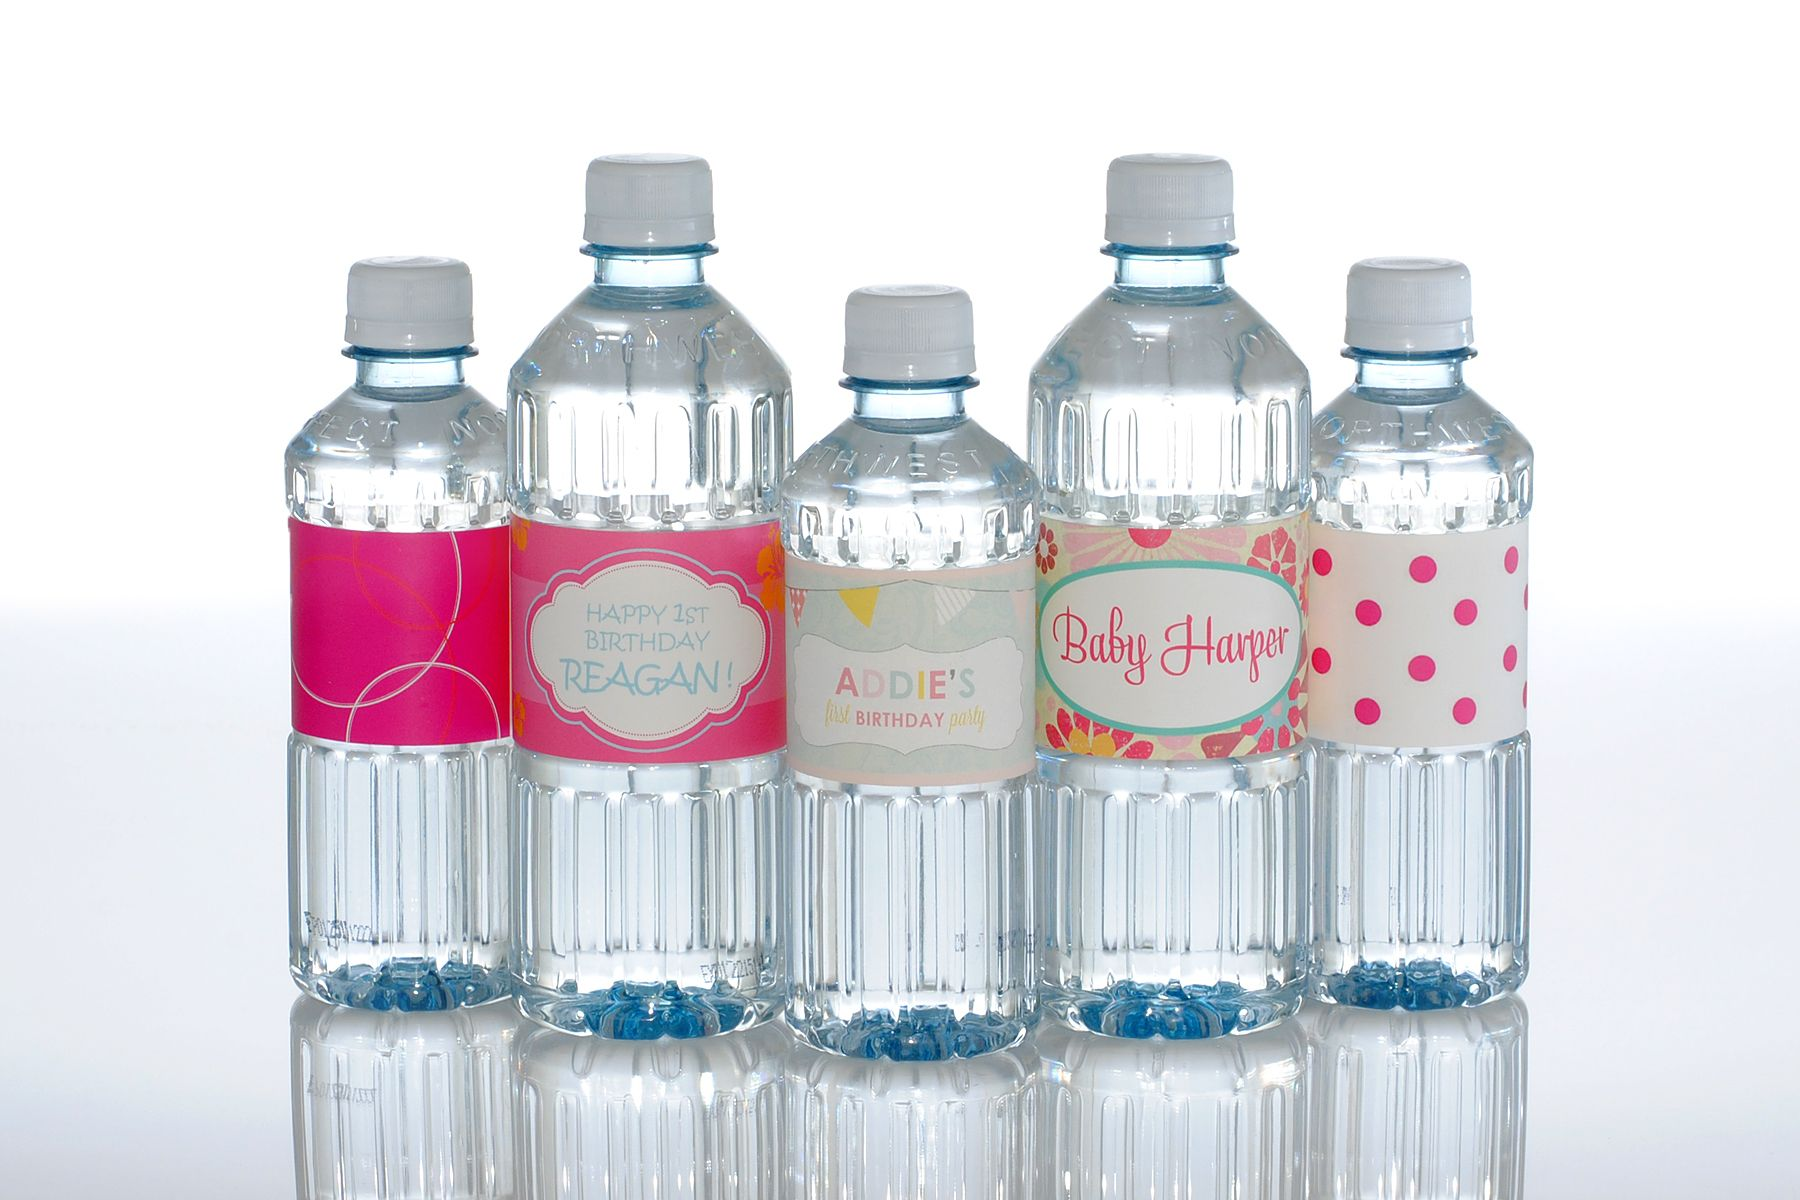 Birthday Bottled Water Create Your Own Design With Text Photos And More Birthday Partyfavors Bottledwater Water Bottle Bottle Custom Labels